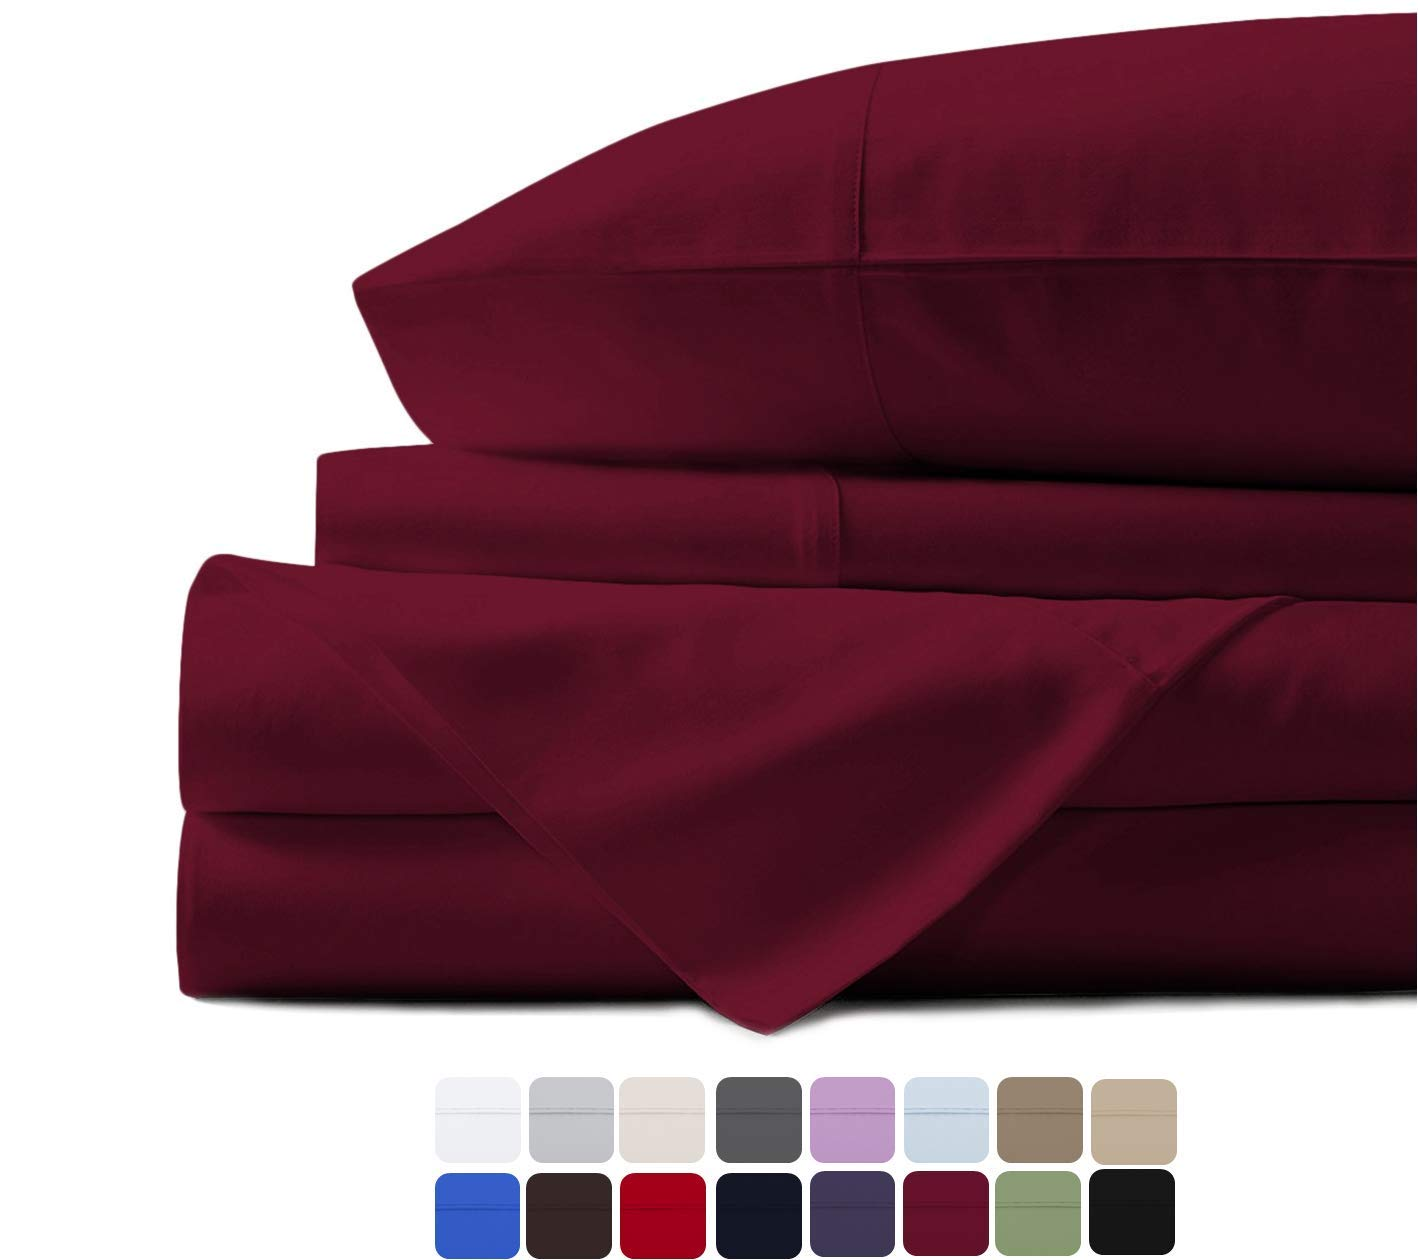 500 Thread Count 100% Cotton Sheet Burgundy King Sheets Set, 4-Piece Long-staple Combed Pure Cotton Best Sheets For Bed, Breathable, Soft & Silky Sateen Weave Fits Mattress Upto 18'' Deep Pocket